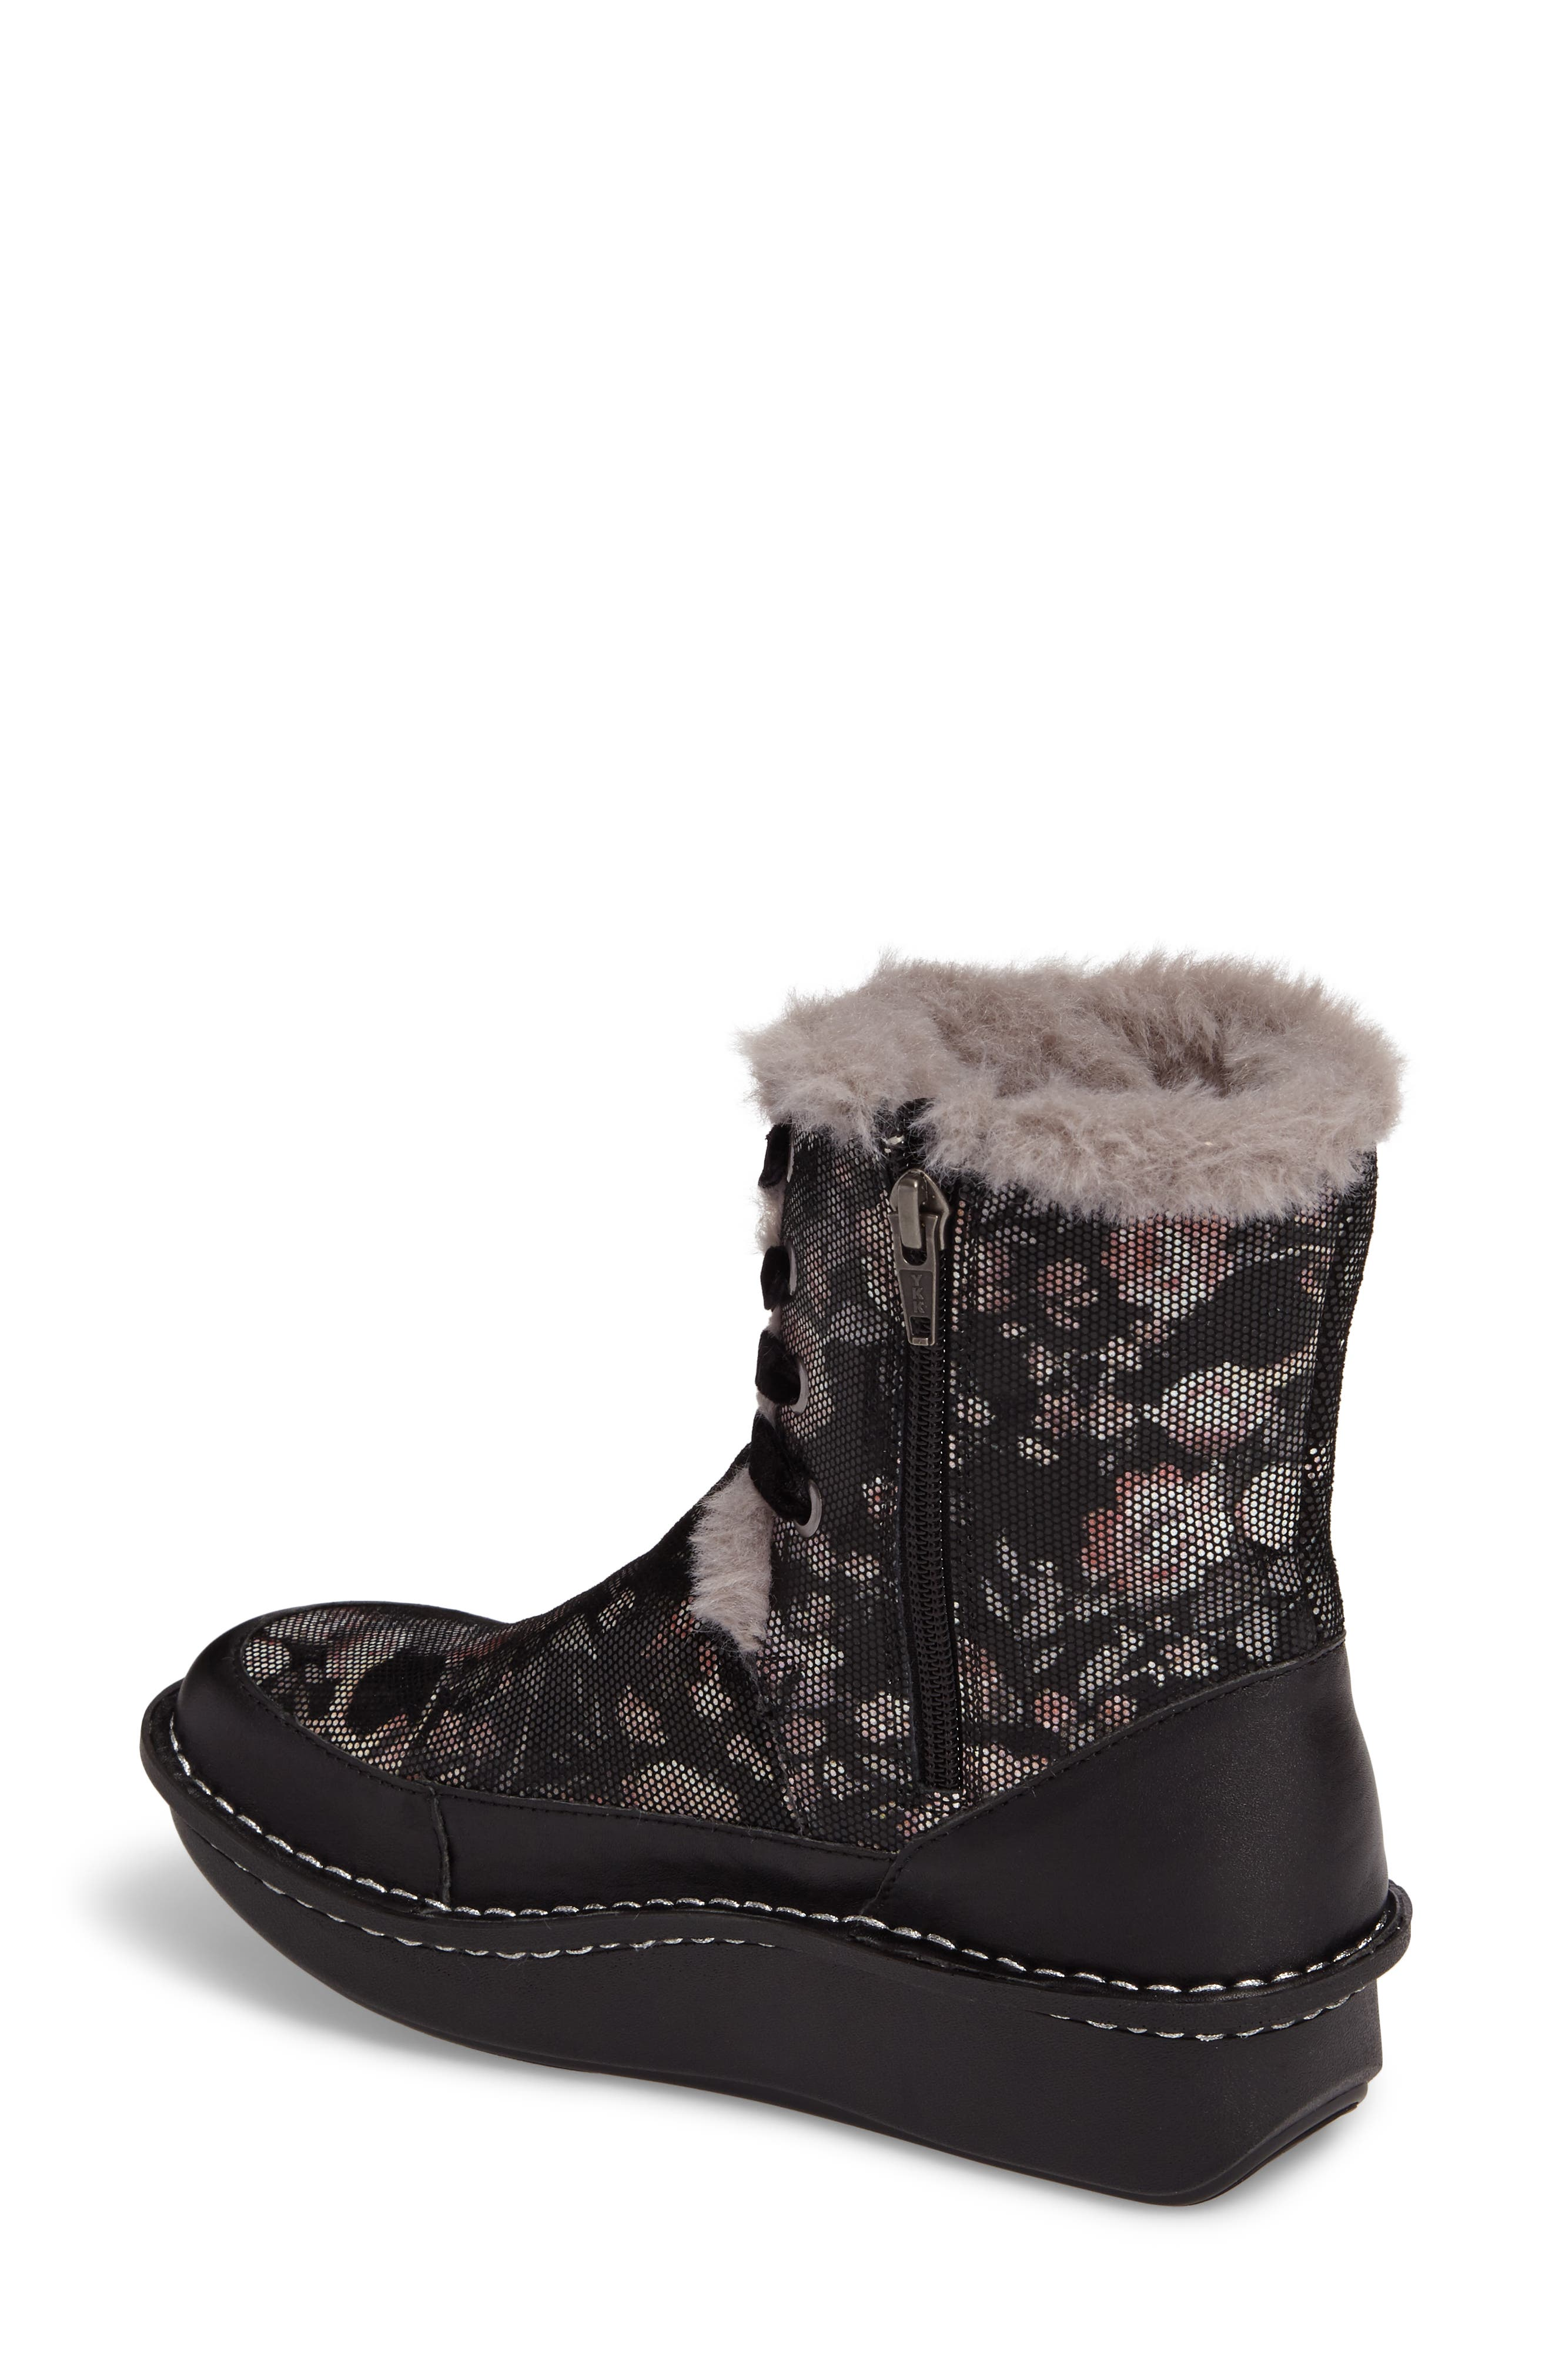 Twisp Lace-Up Boot with Faux Fur Lining,                             Alternate thumbnail 2, color,                             001